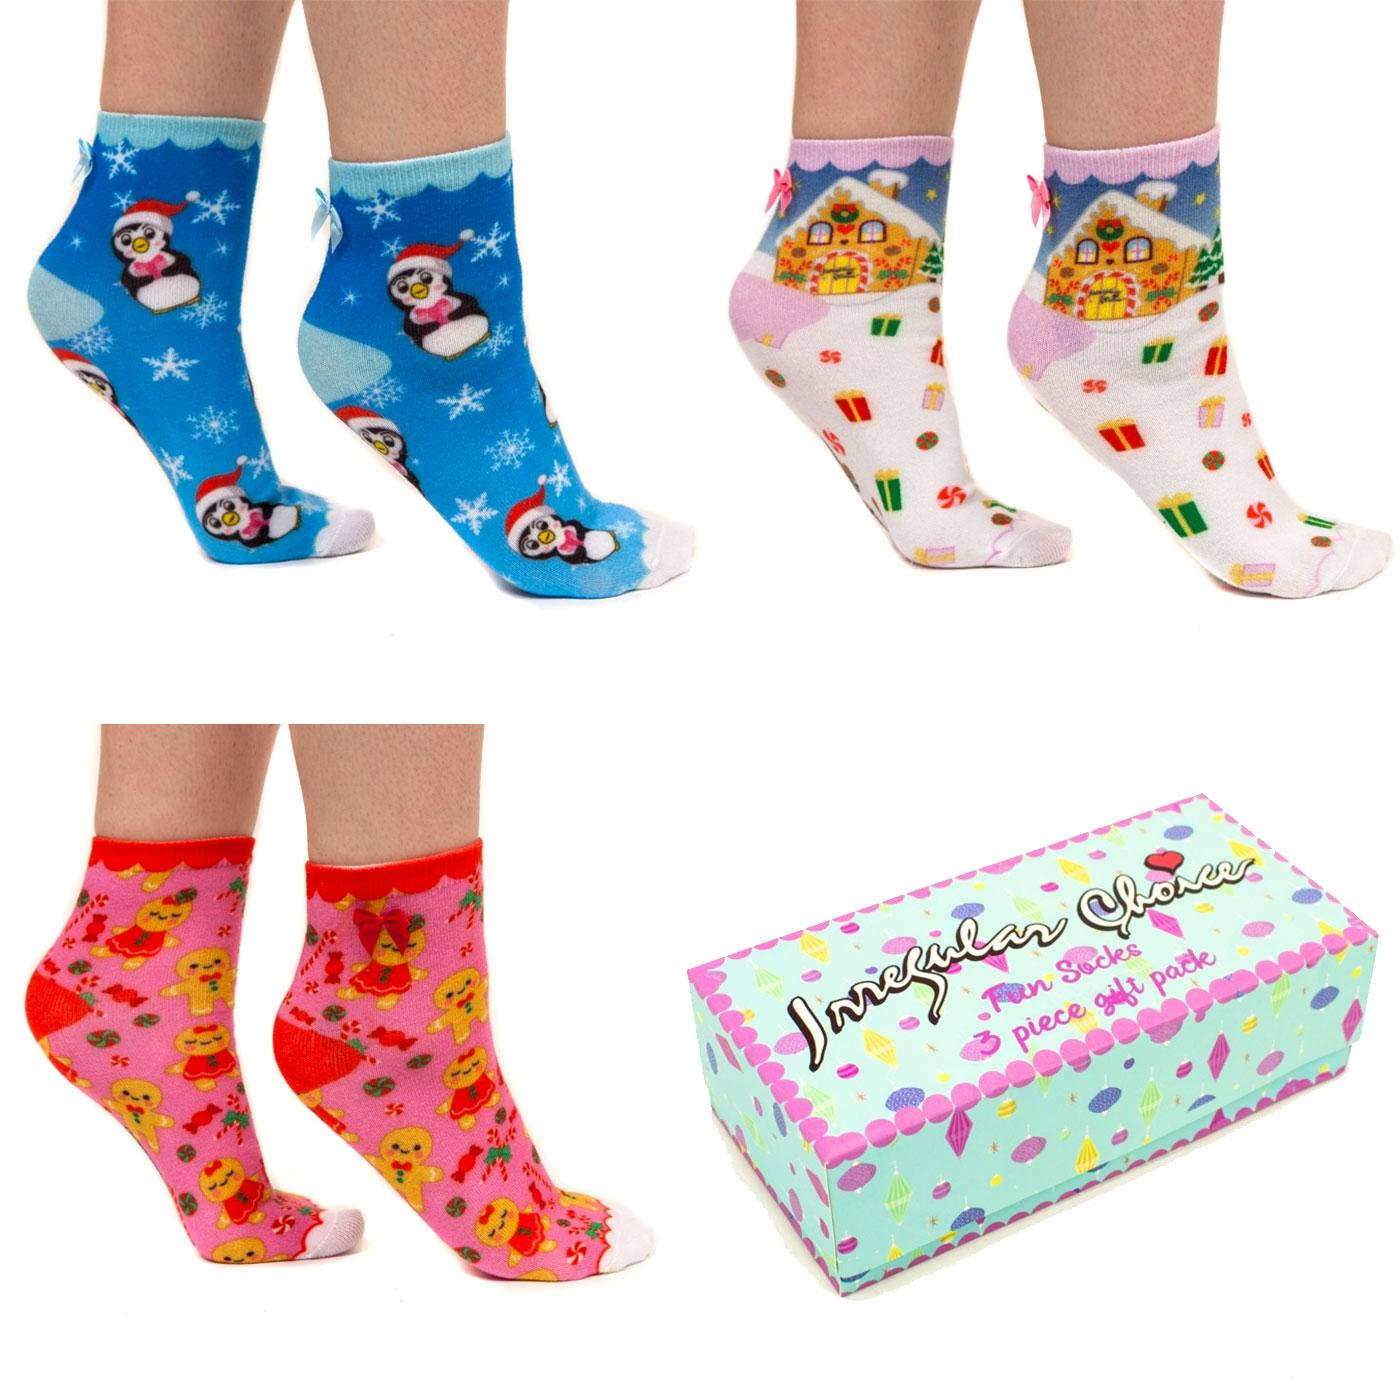 3 Pairs Of IRREGULAR CHOICE Xmas Socks Gift Set